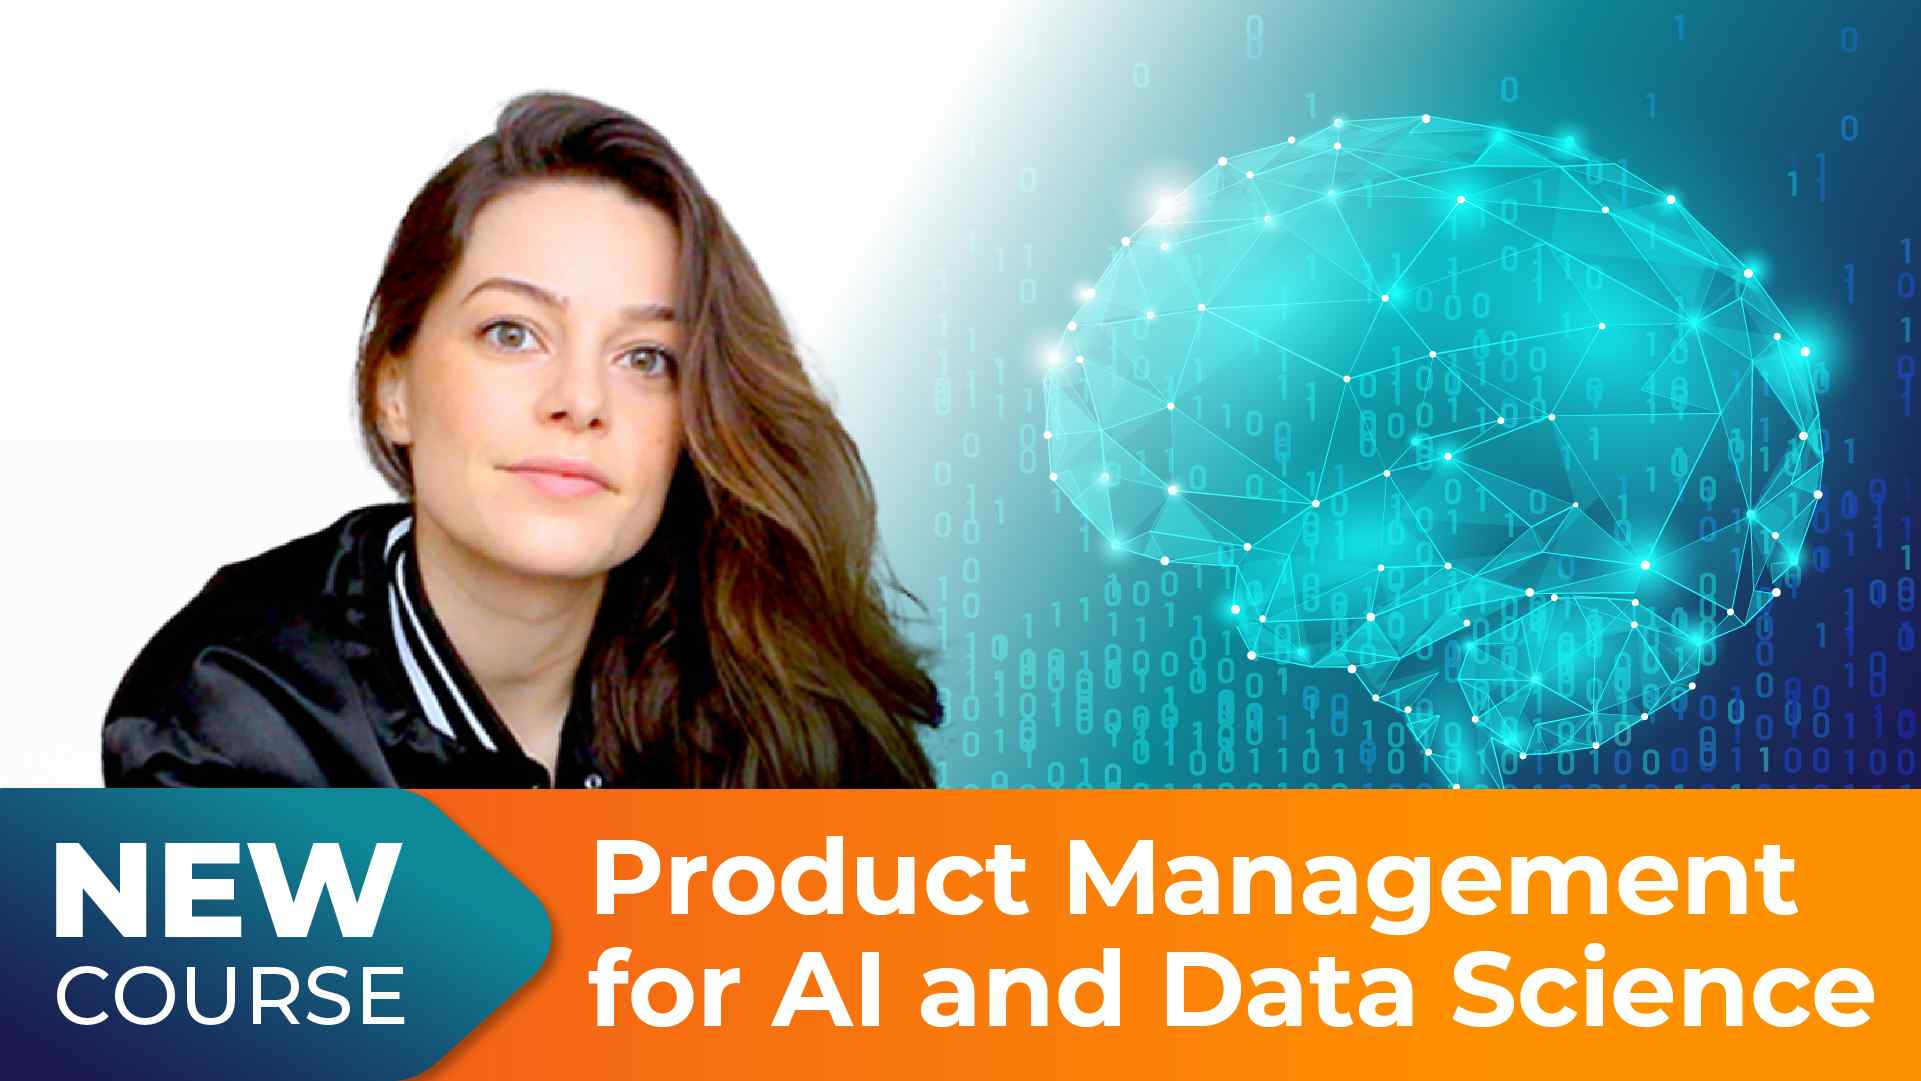 New Course! Product Management for AI & Data Science with Danielle Thé